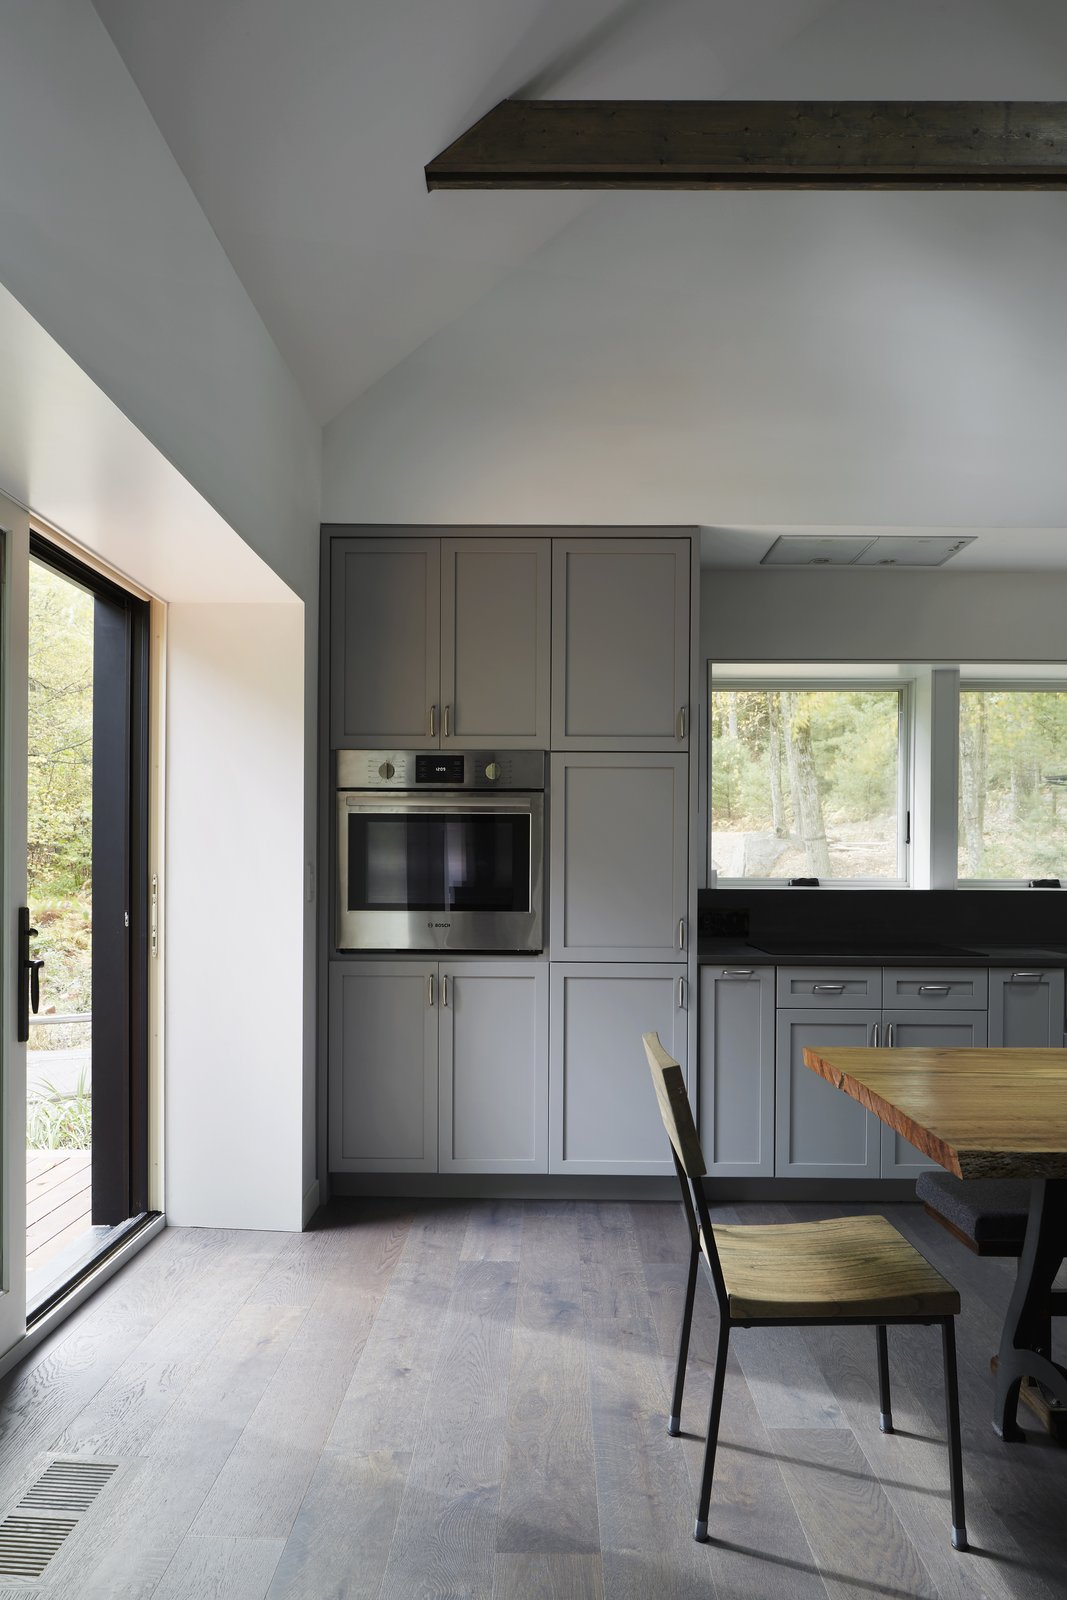 Kitchen, Light Hardwood Floor, Wall Oven, Ceiling Lighting, and White Cabinet  Photo 8 of 13 in A Minimalist Retreat Rises From Old Stone Walls in Hudson Valley